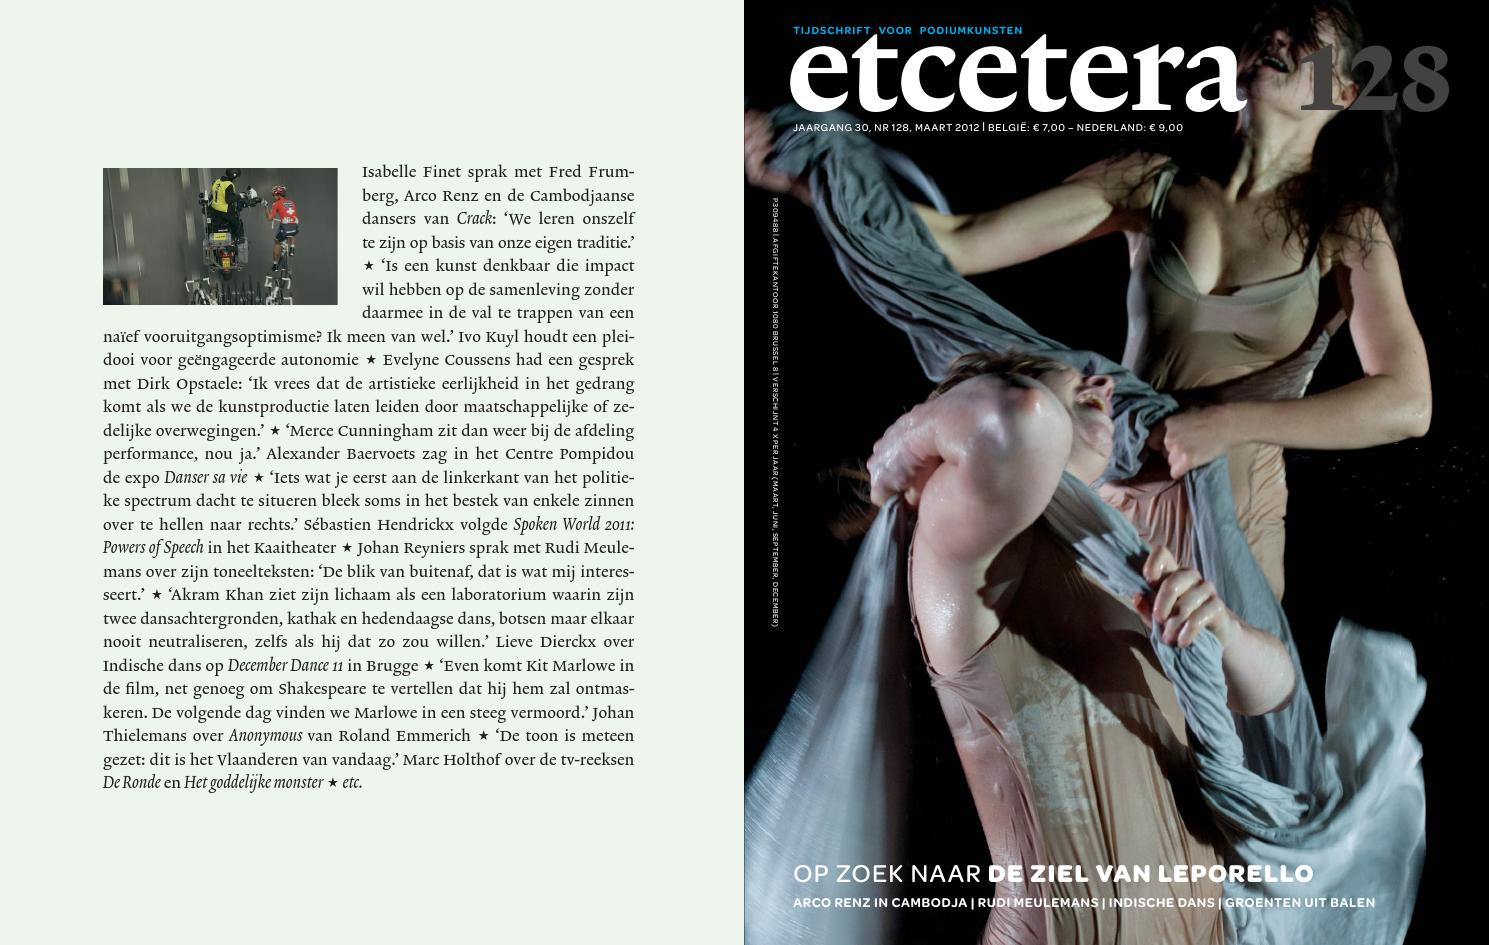 Etcetera 128 by etcetera - issuu